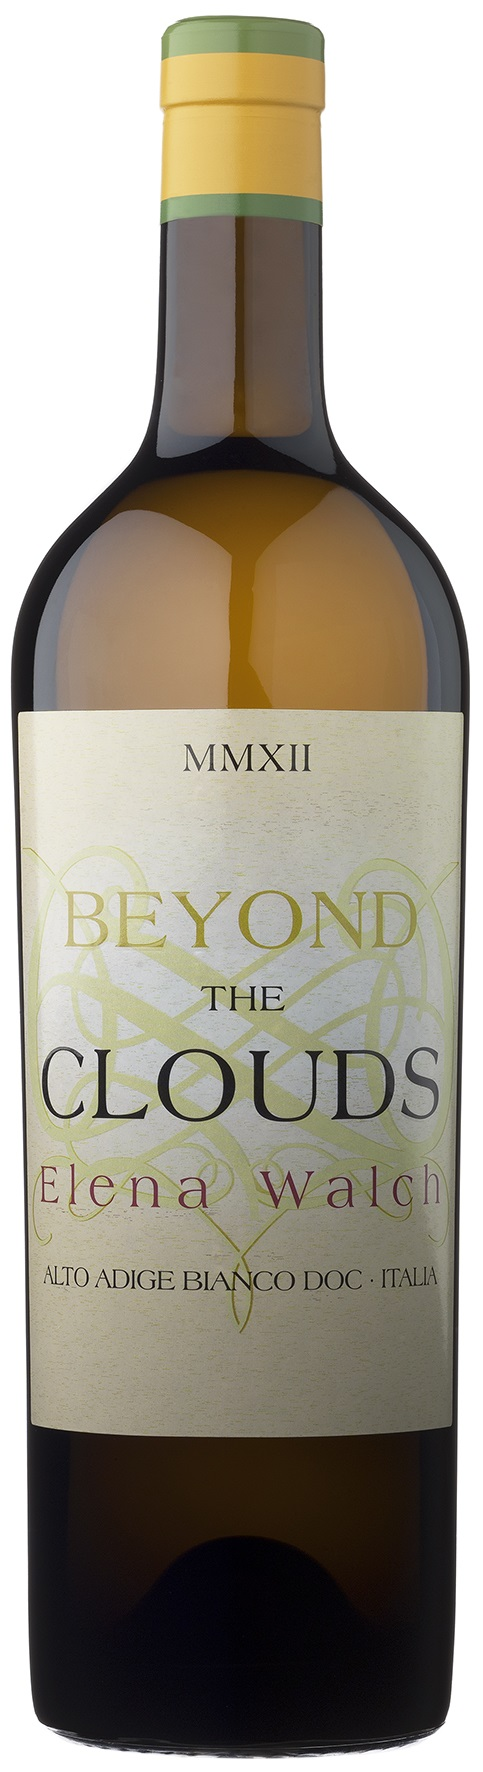 Beyond The Clouds - Top 100 Italian Wines - James Suckling - Elena Walch